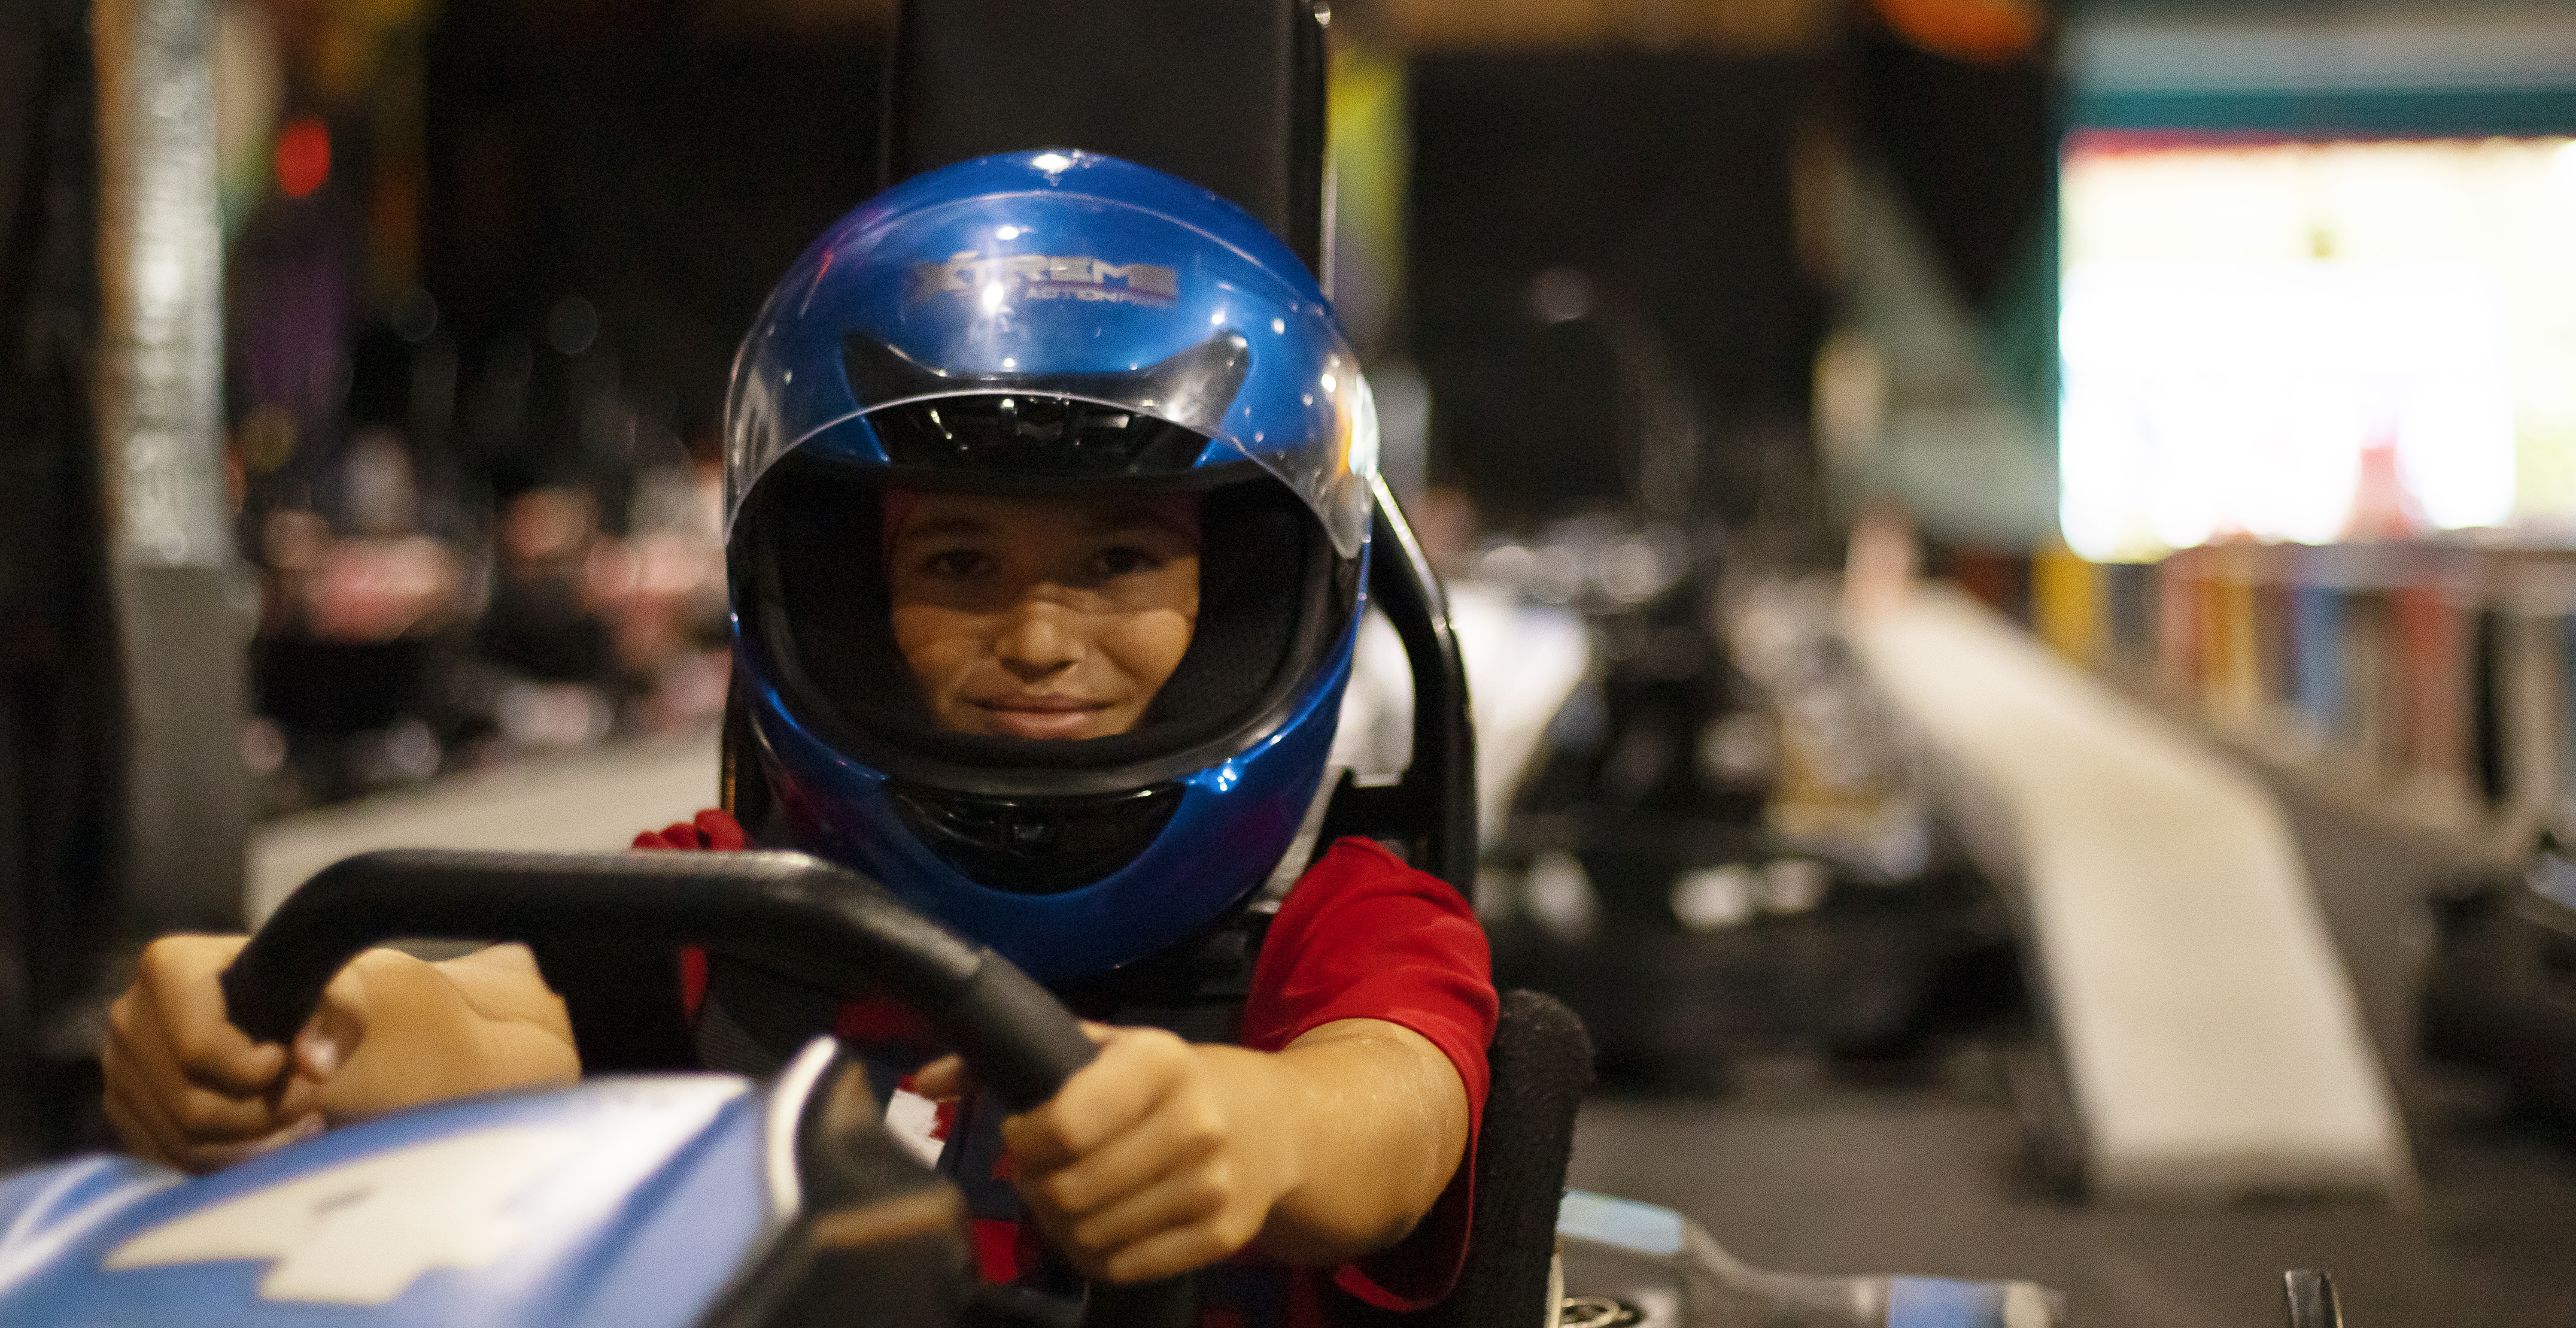 Kid Go Kart Fun